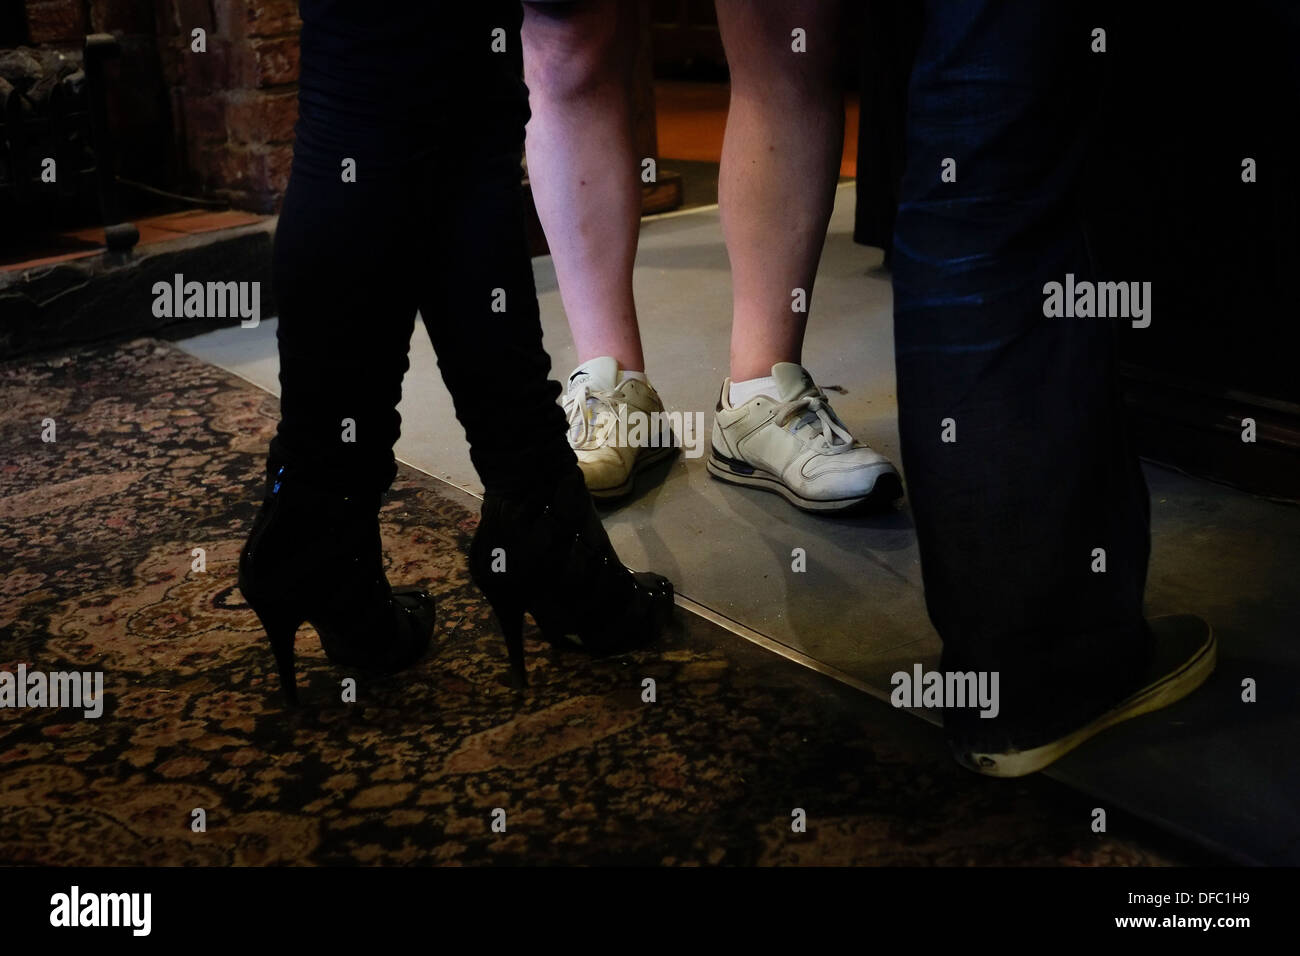 Shoes worn by customers in a pub. - Stock Image